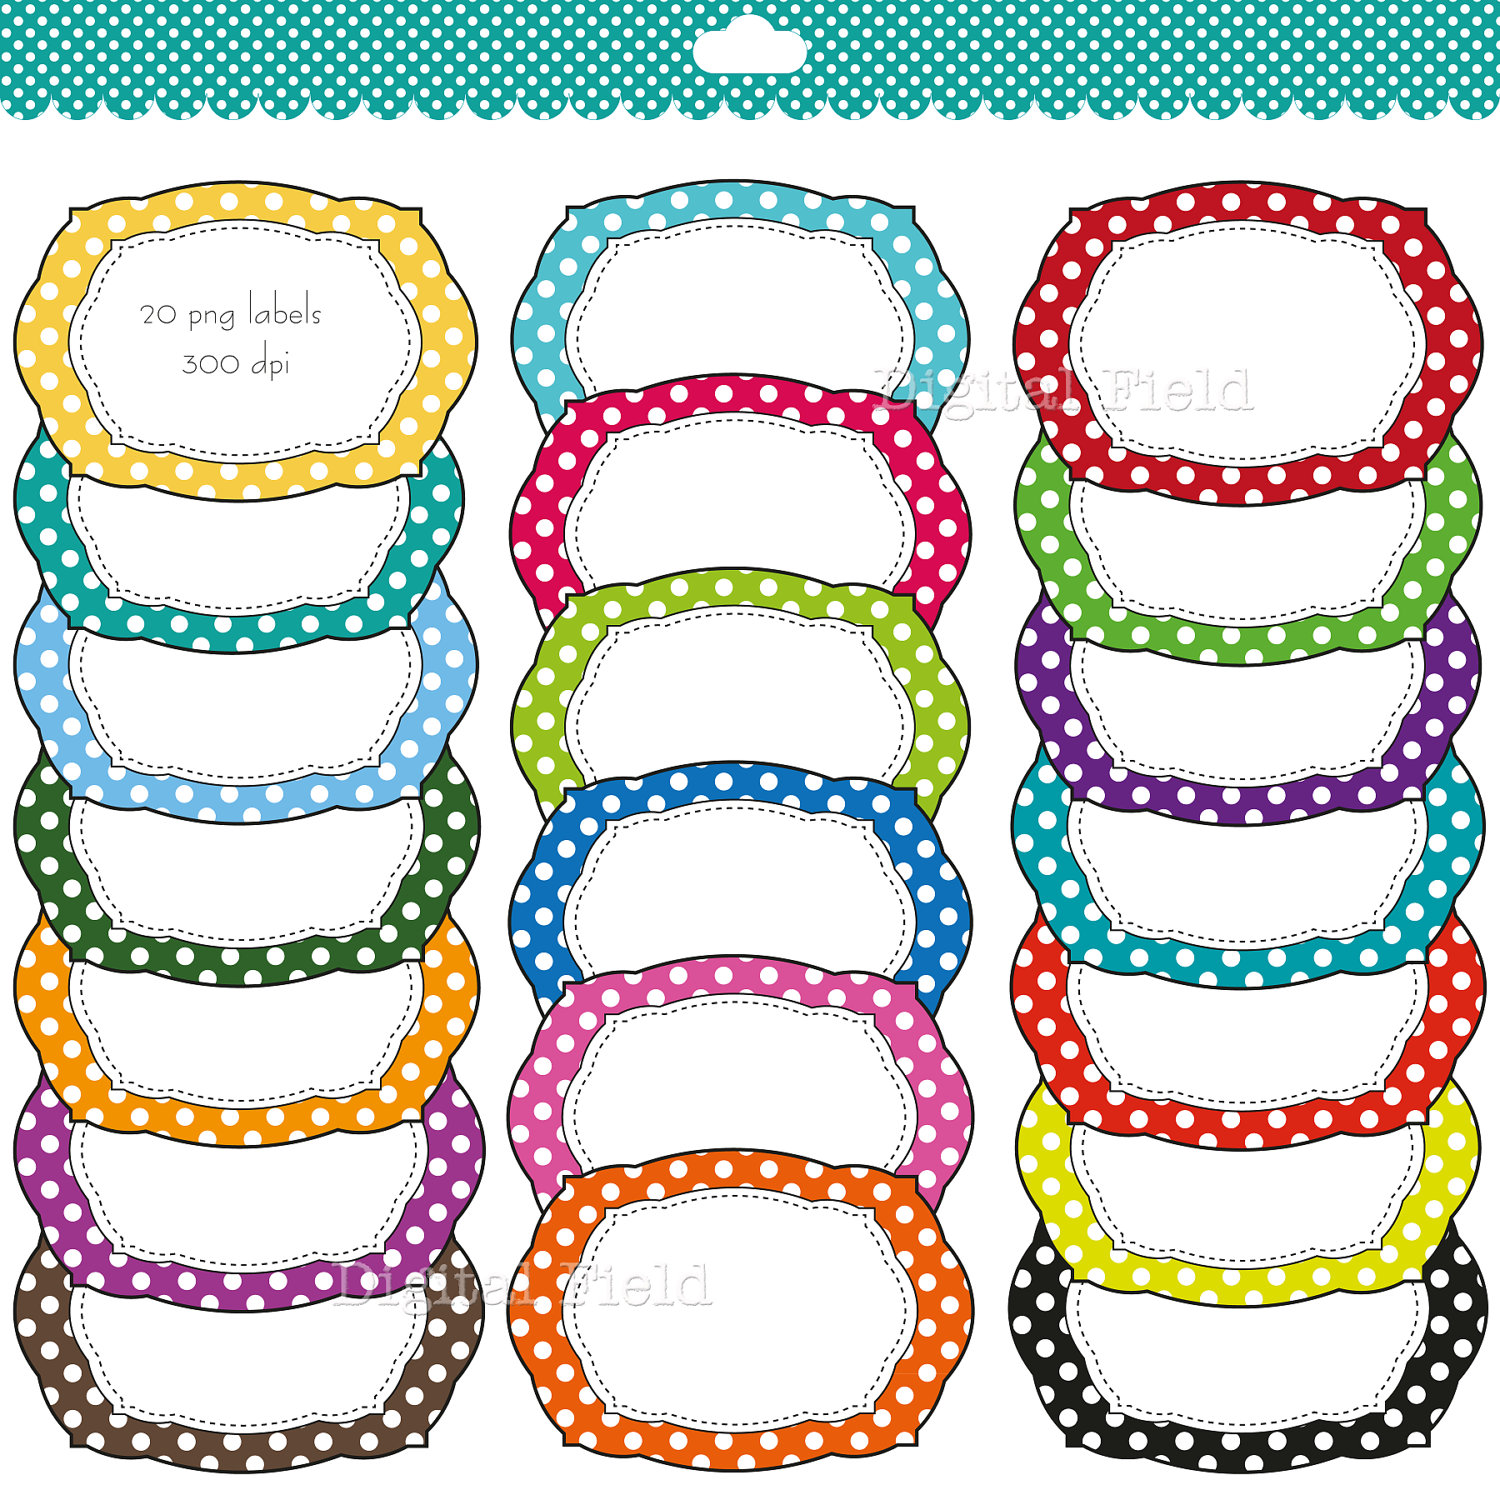 Colorful polka dot labels clip | Clipart Panda - Free Clipart Images